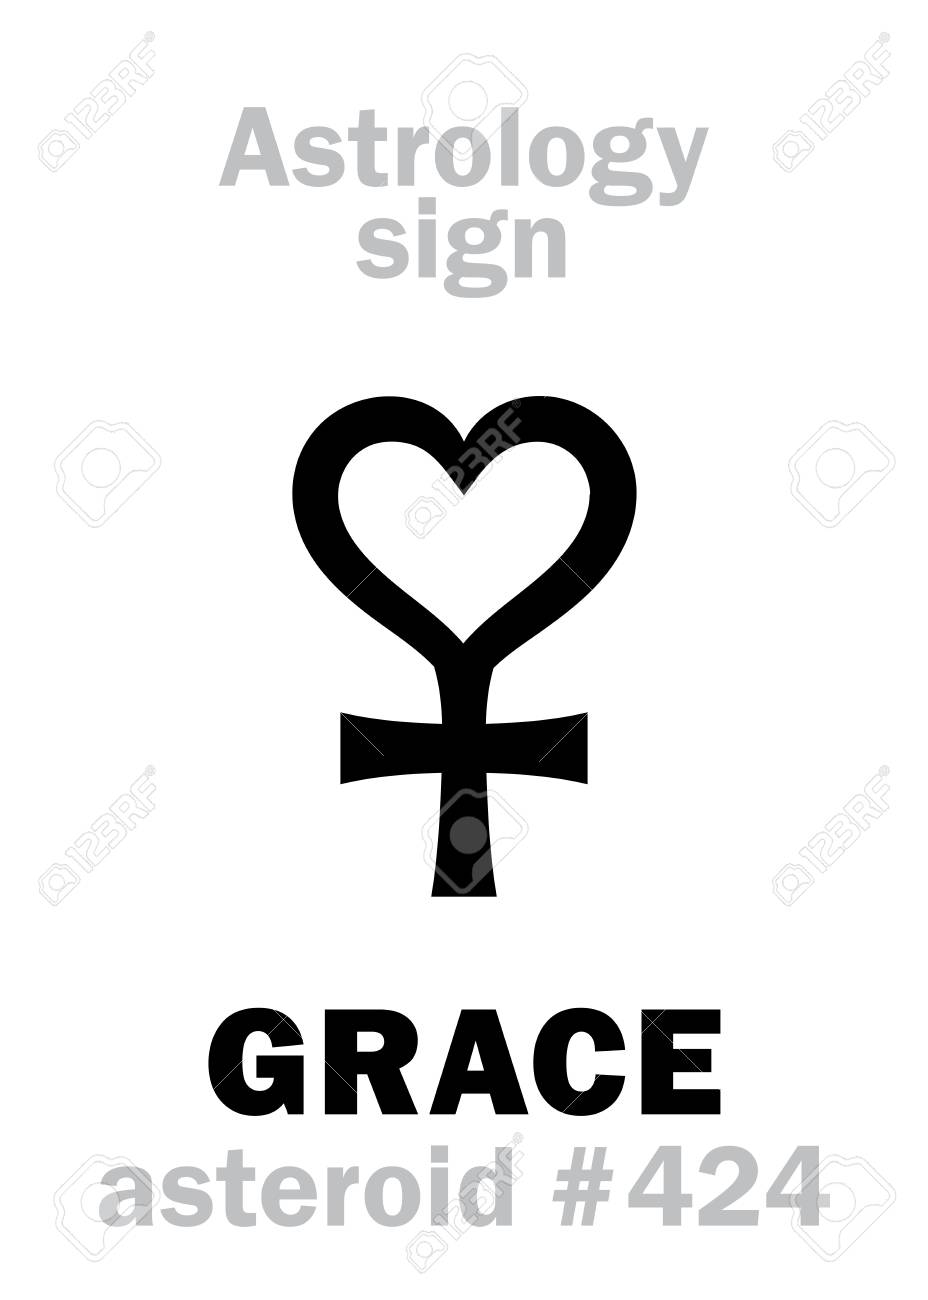 Astrology alphabet grace asteroid 424 hieroglyphics character astrology alphabet grace asteroid 424 hieroglyphics character sign single symbol biocorpaavc Images